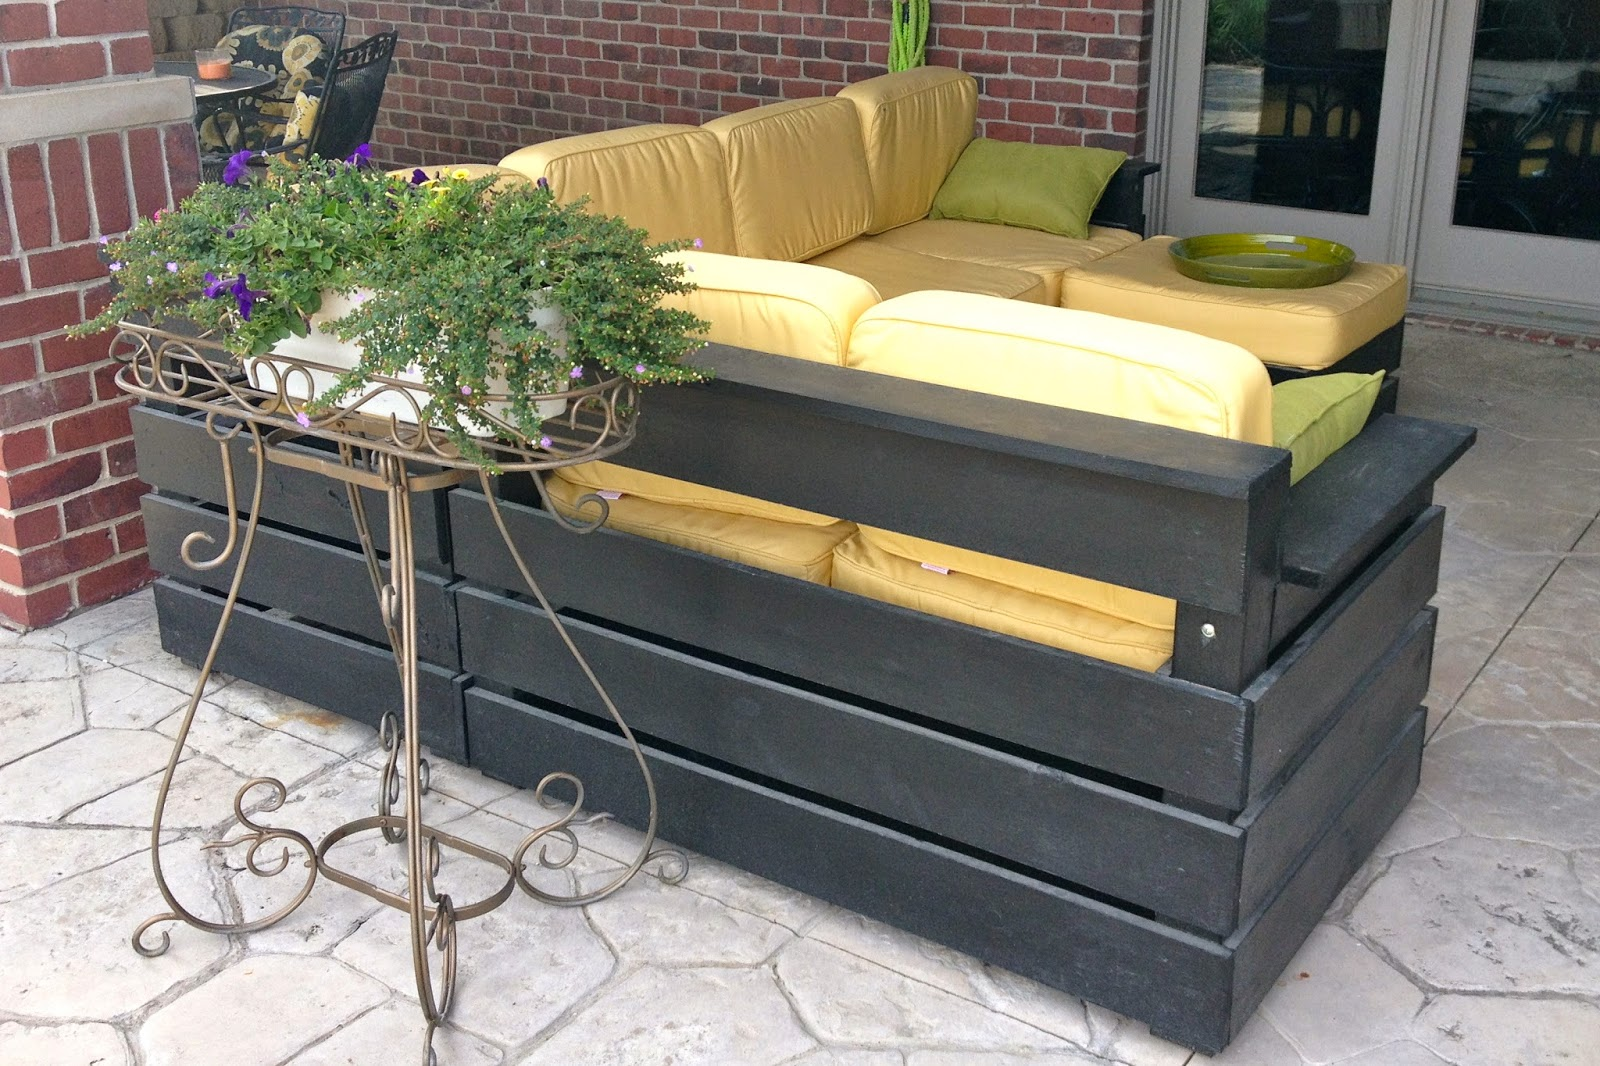 DIY Why Spend More: DIY Outdoor Sectional